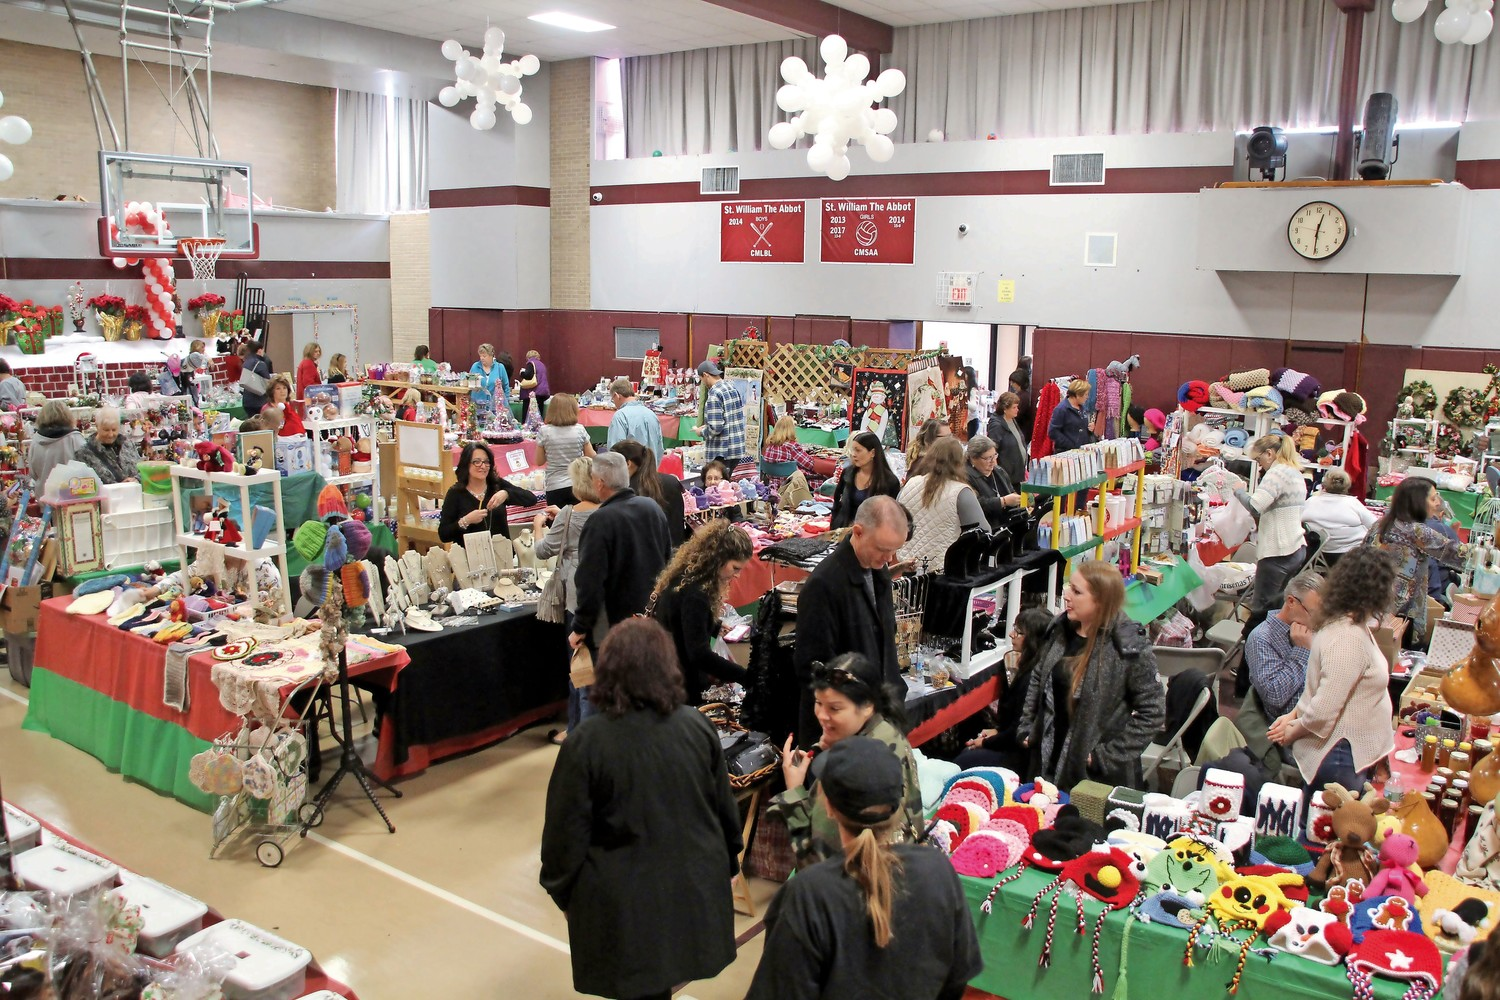 Dozens of people came out to the holiday fair at St. William the Abbot Catholic School last Saturday.